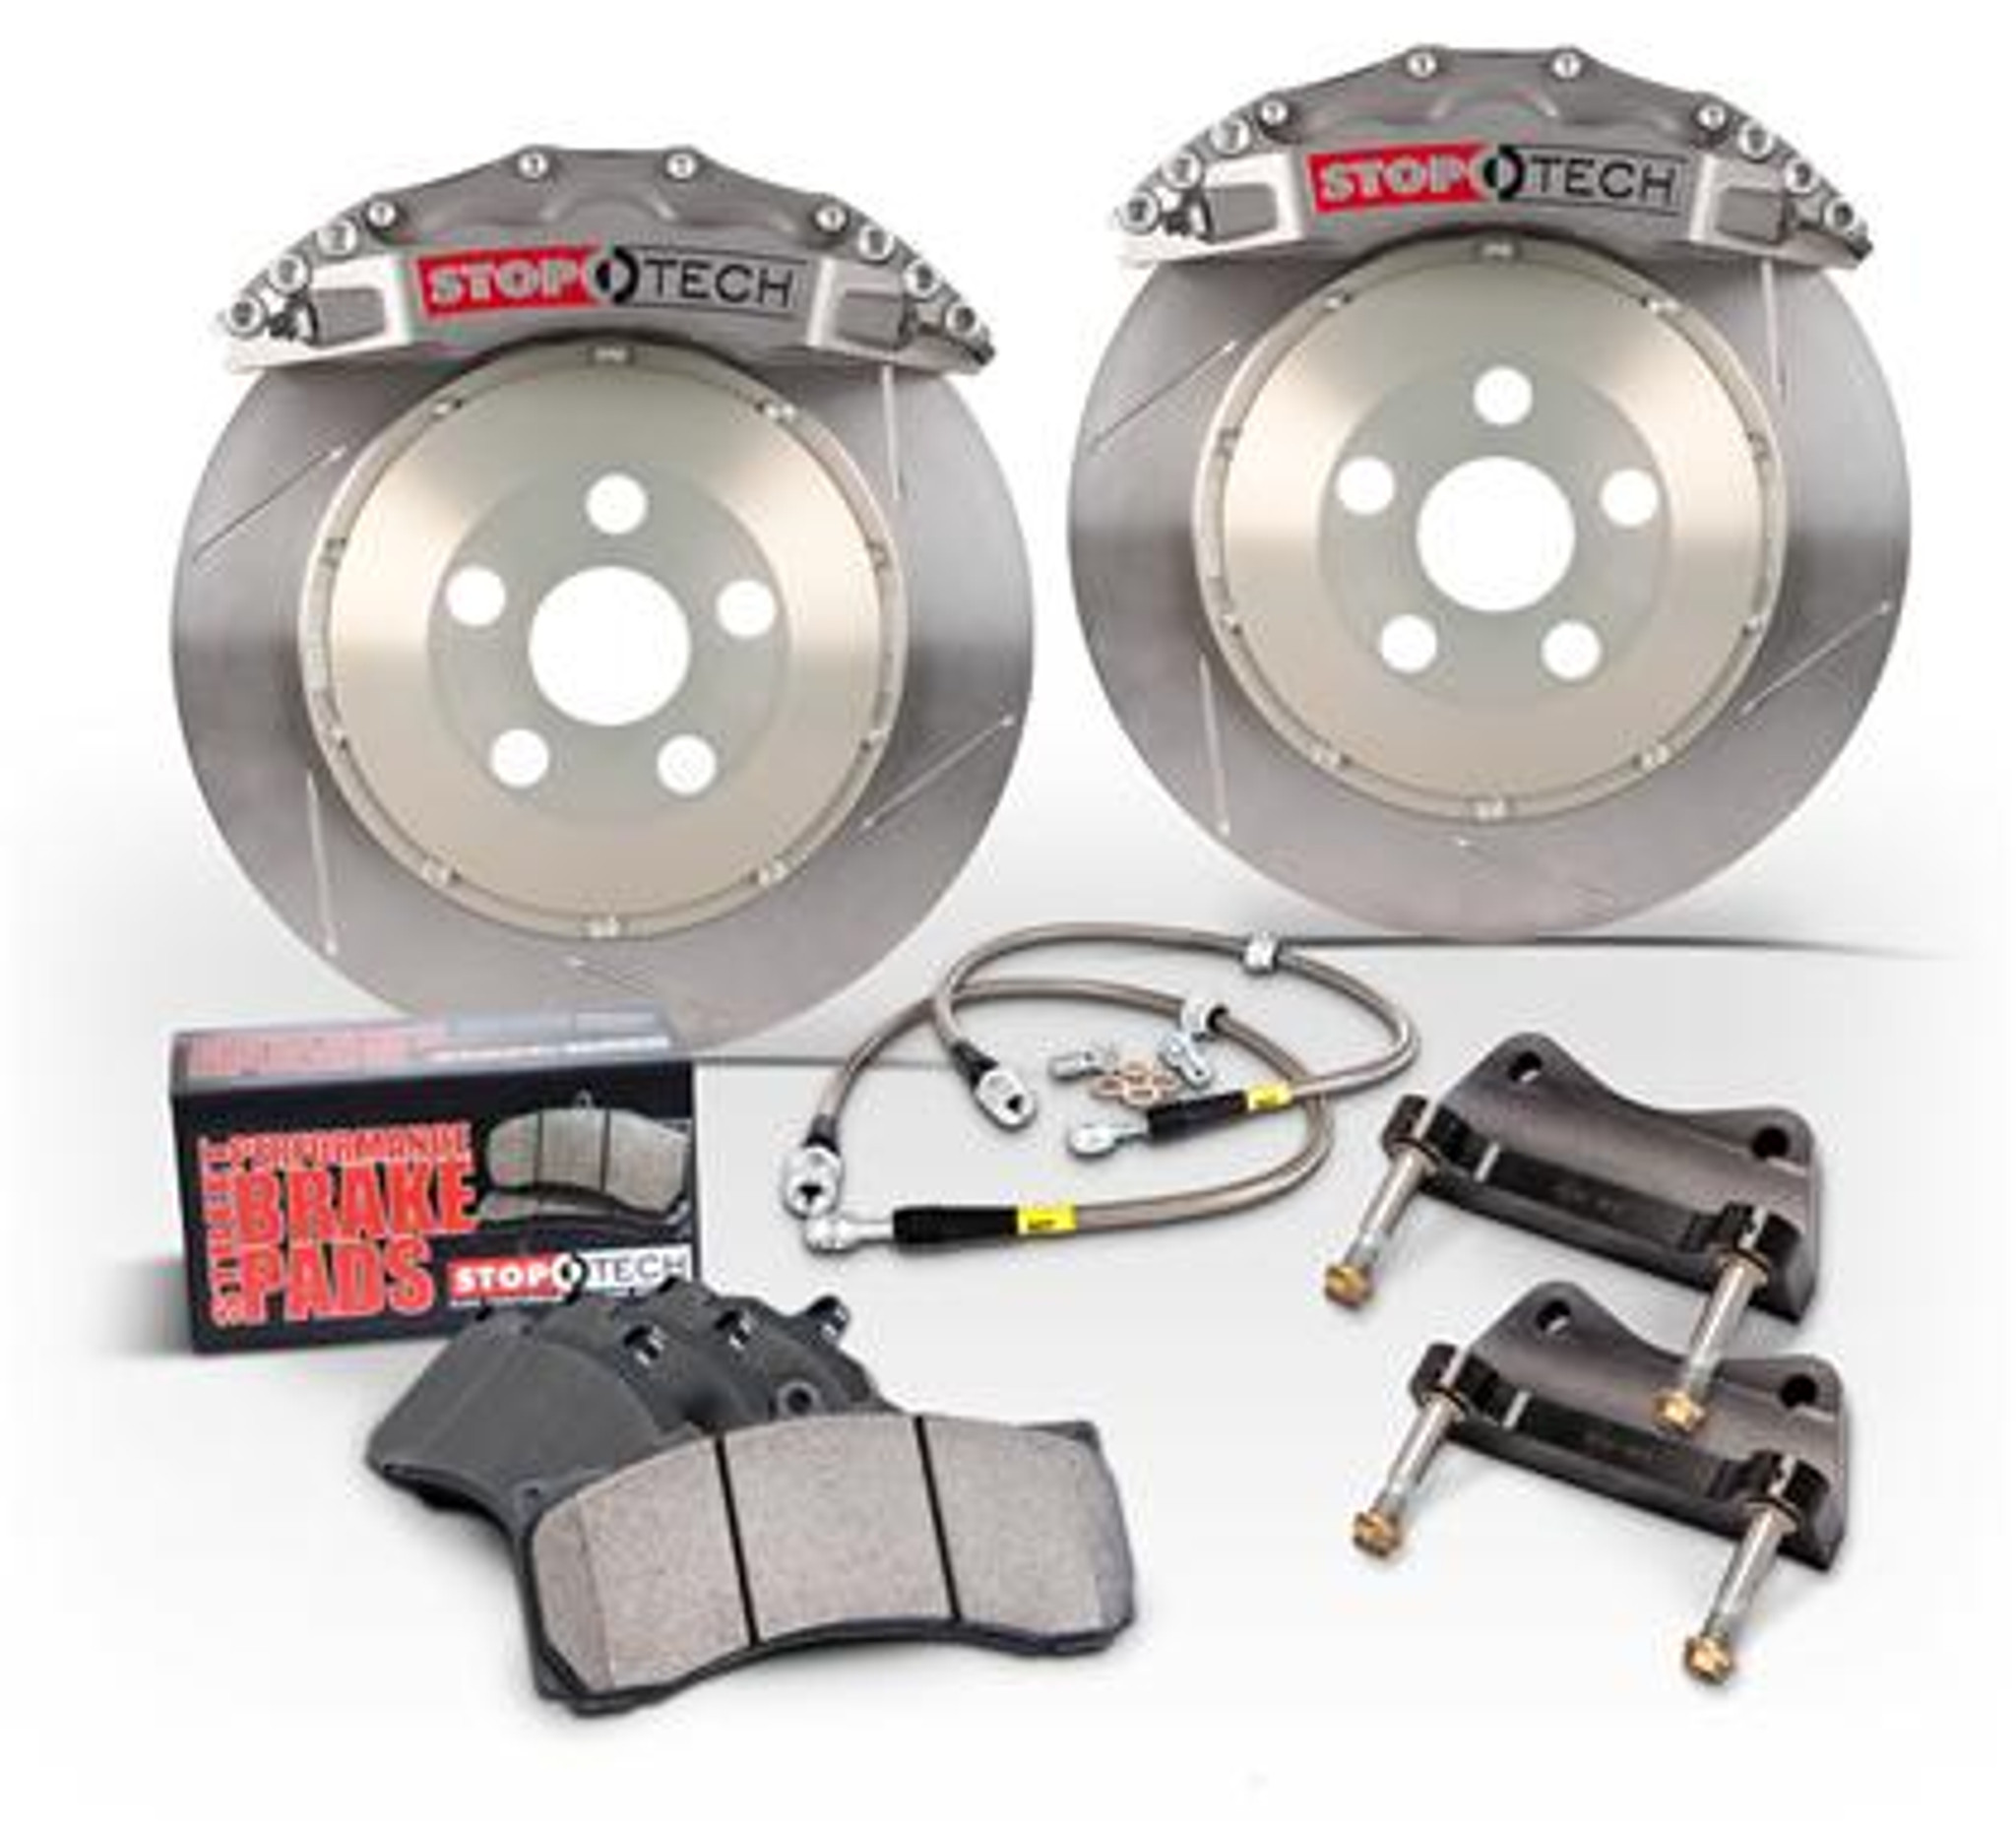 Clutch Steel Plate Set For 2002 KTM 65 SX Offroad Motorcycle Pro X 16.S50013